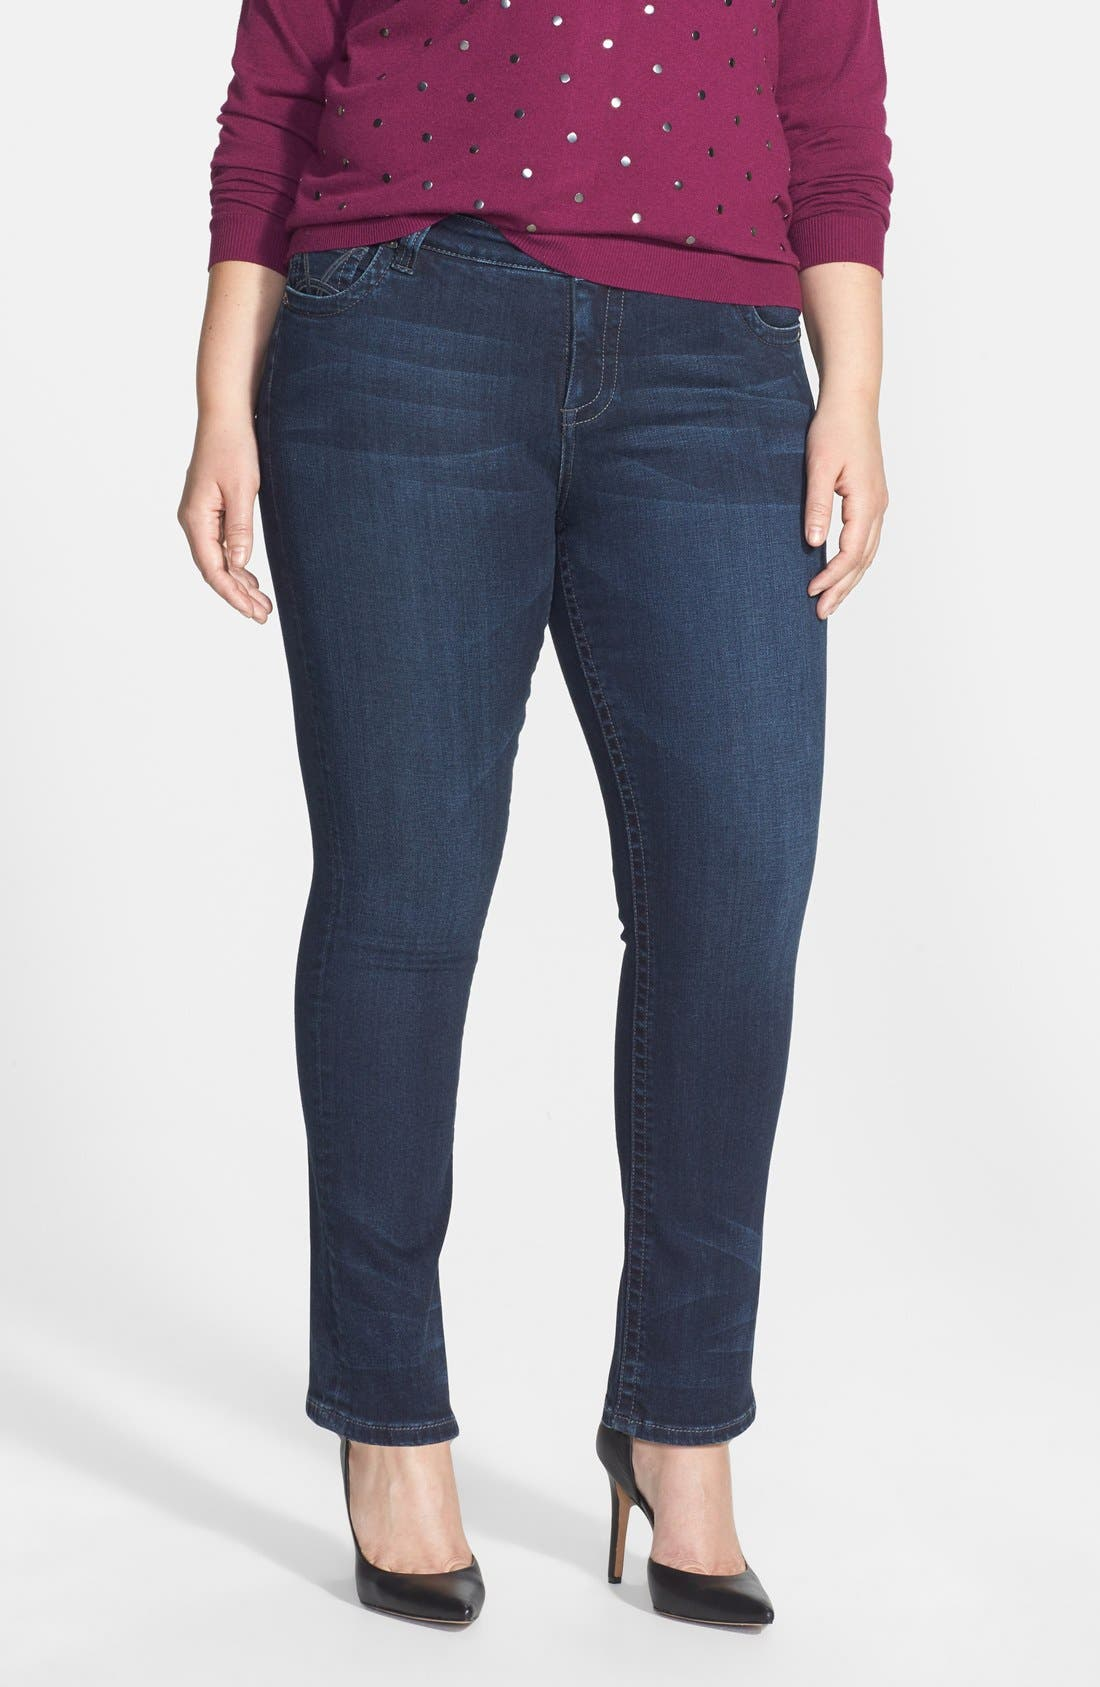 Main Image - KUT from the Kloth 'Stevie' Straight Leg Jeans (Progressive) (Plus Size) (Online Only)